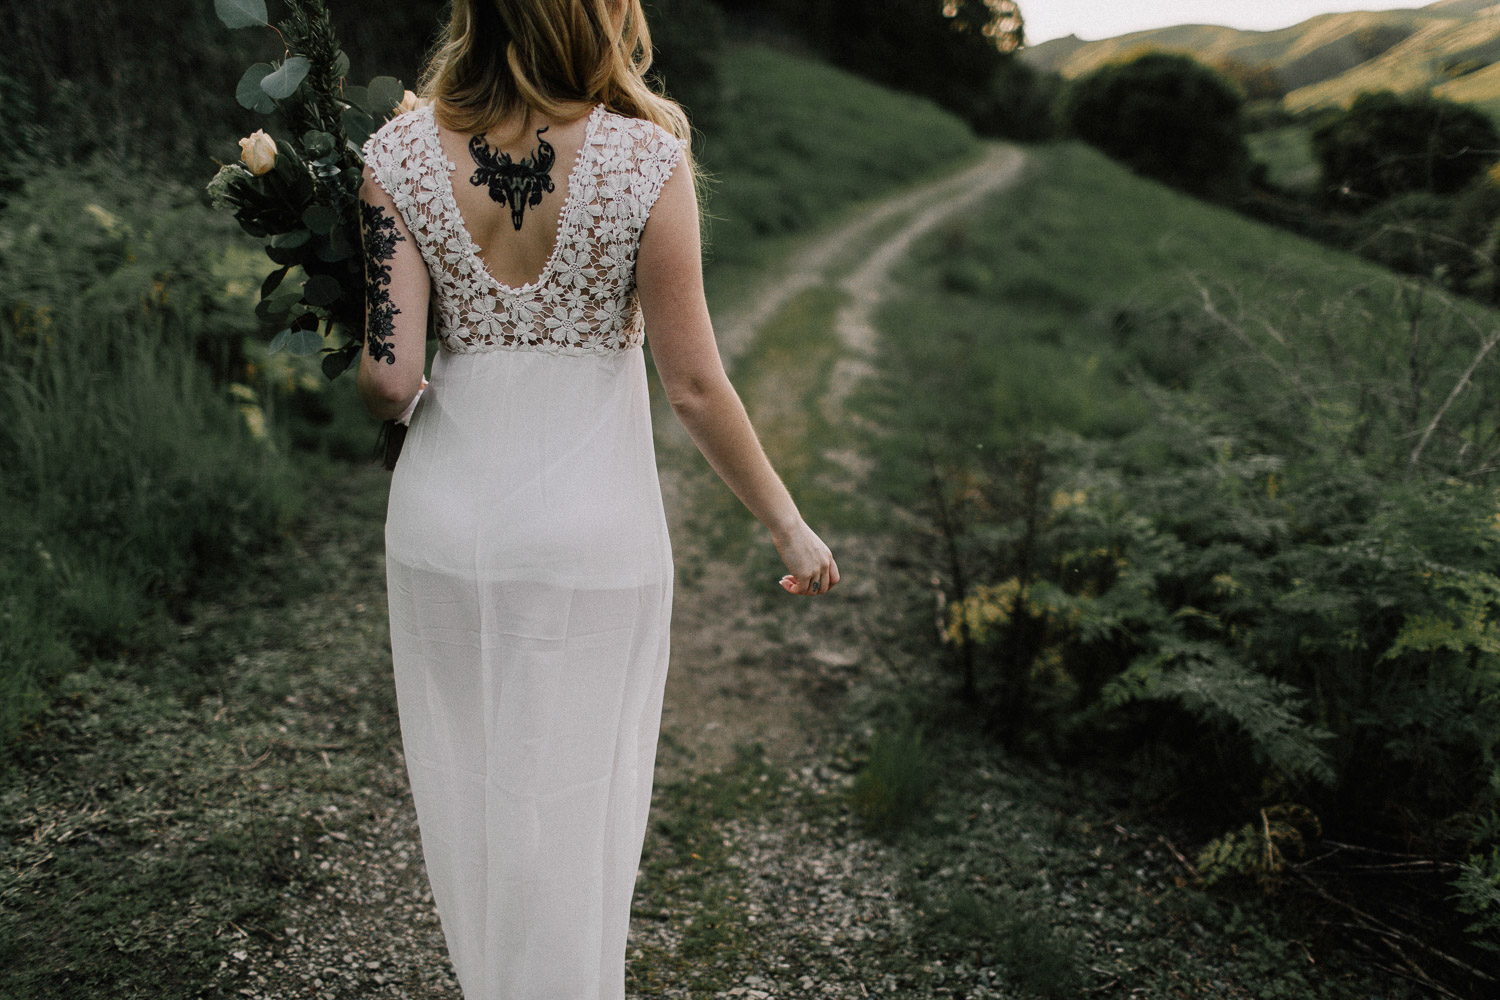 Image of the back of bride